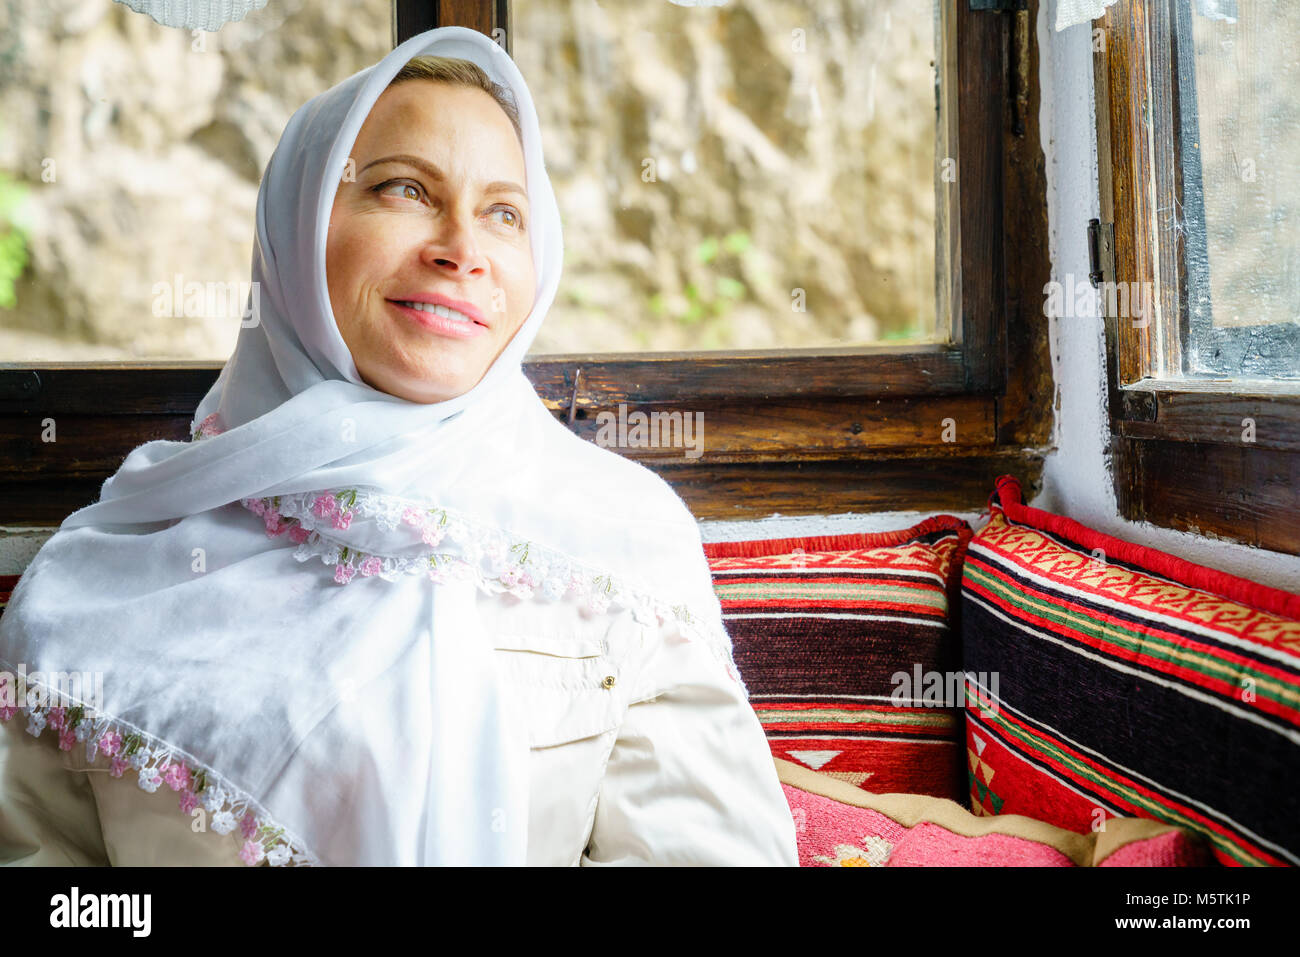 Portrait de femme portant un voile traditionnel à un monastère derviche en Bosnie Photo Stock